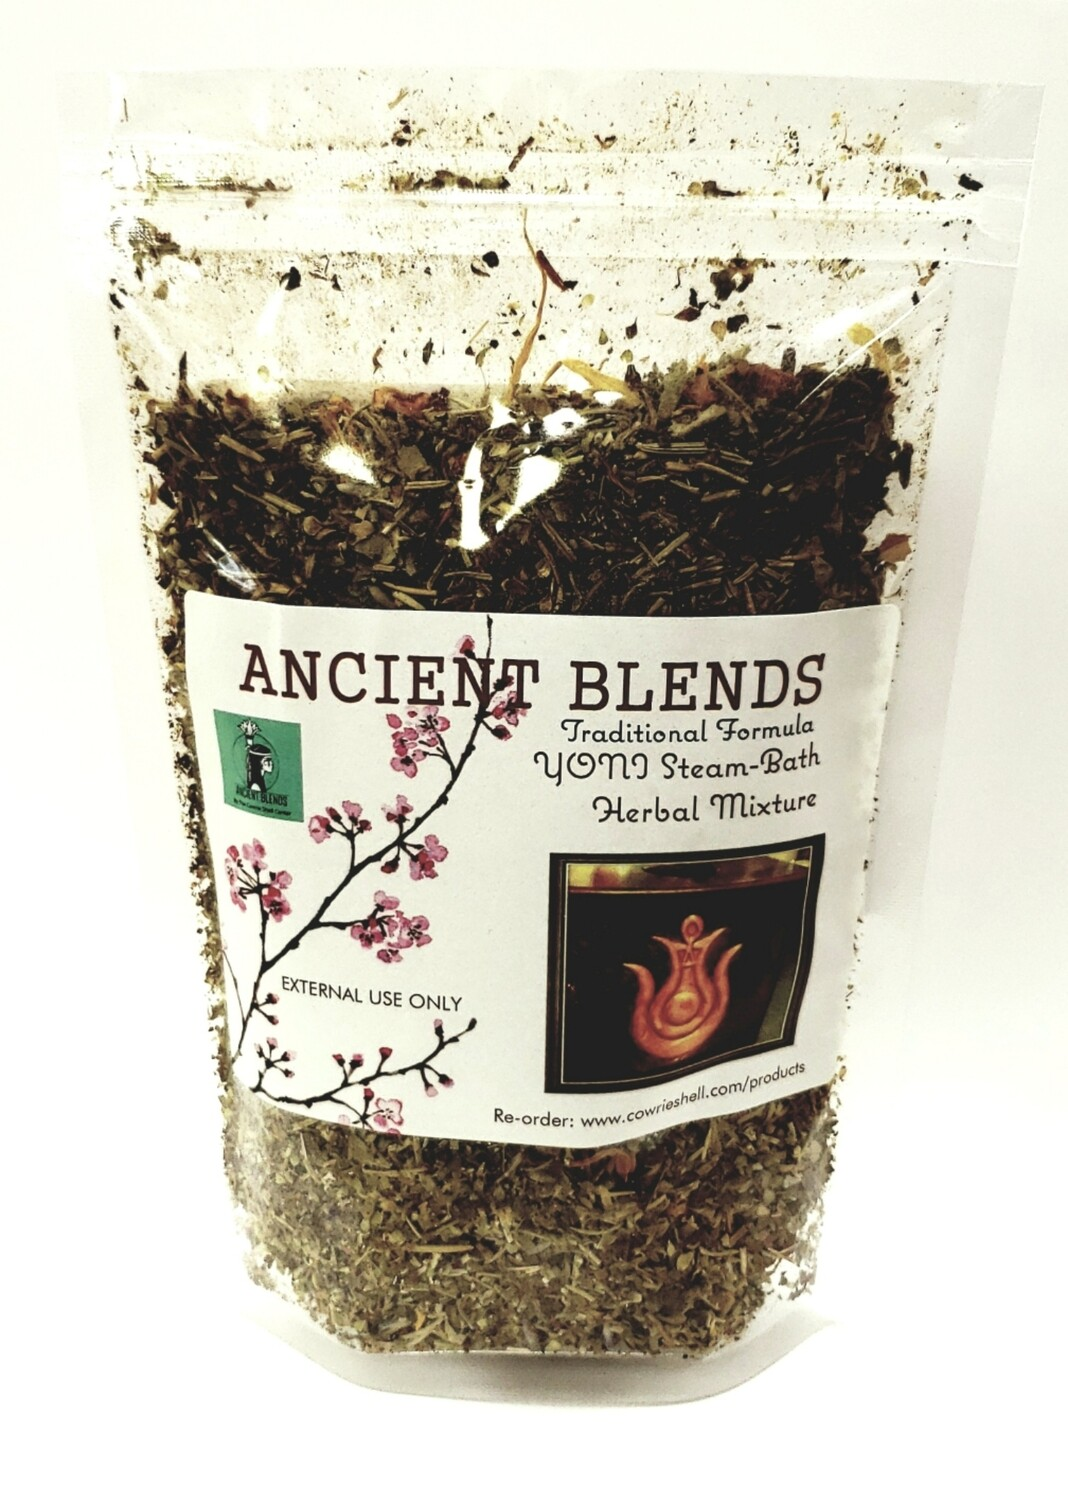 ANCIENT BLENDS Yoni Steam/Bath Herbal Mixture